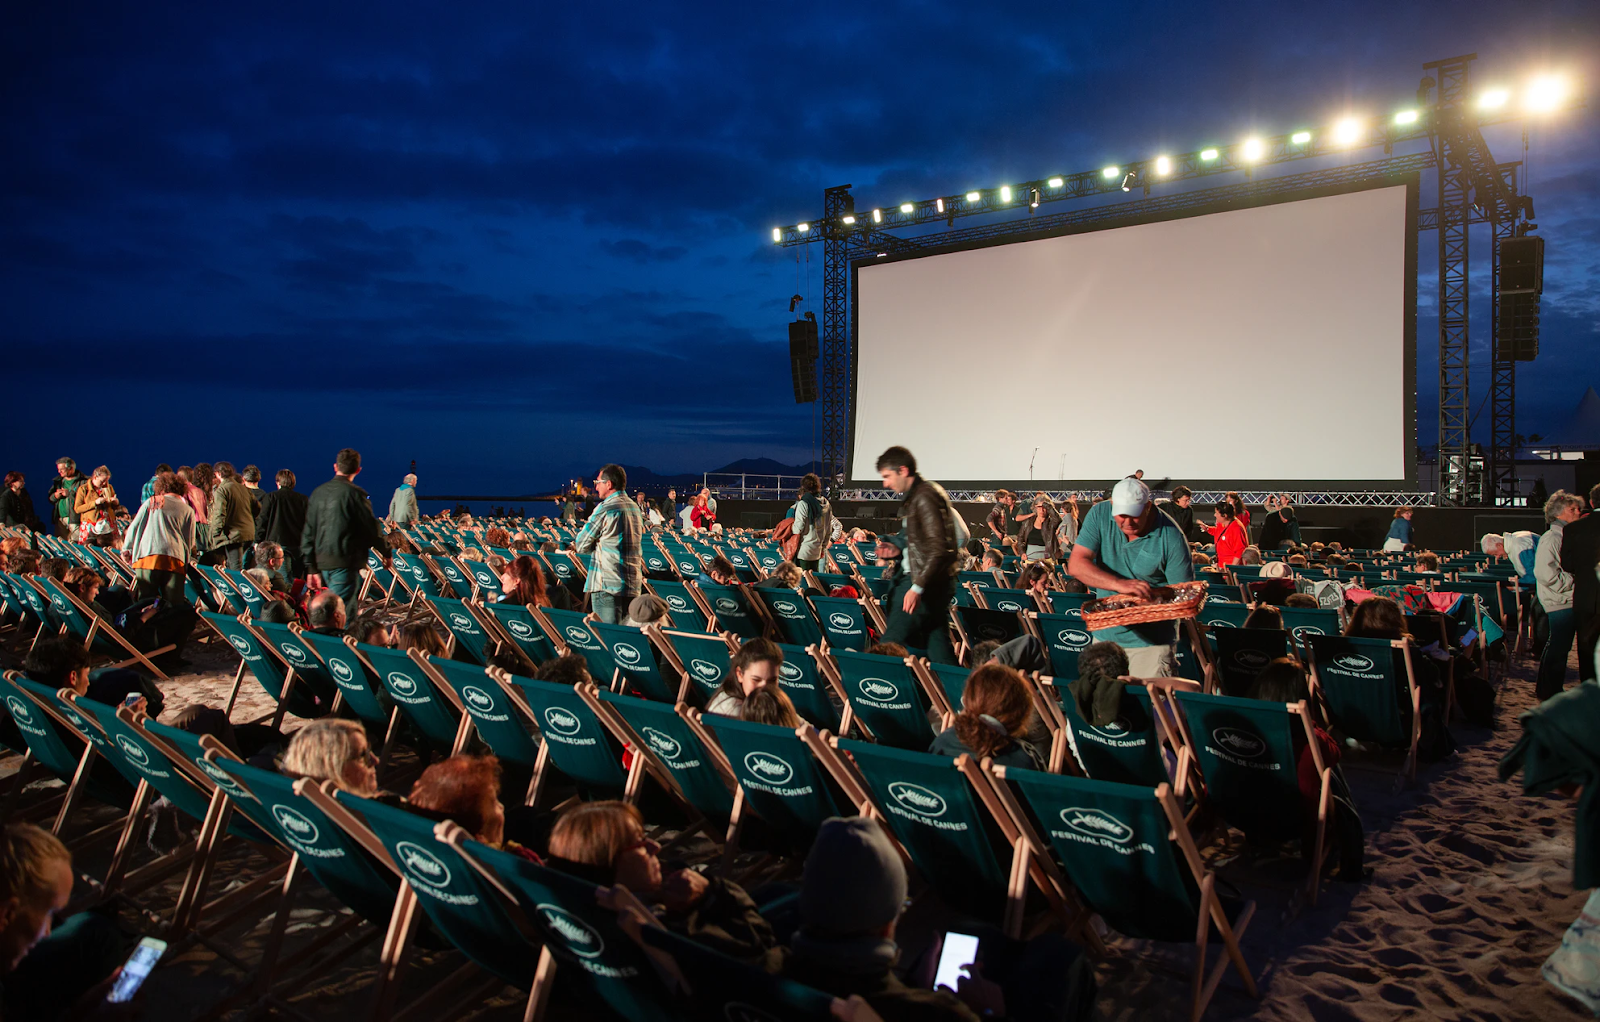 Screening of a movie at the Cannes FilmFestival